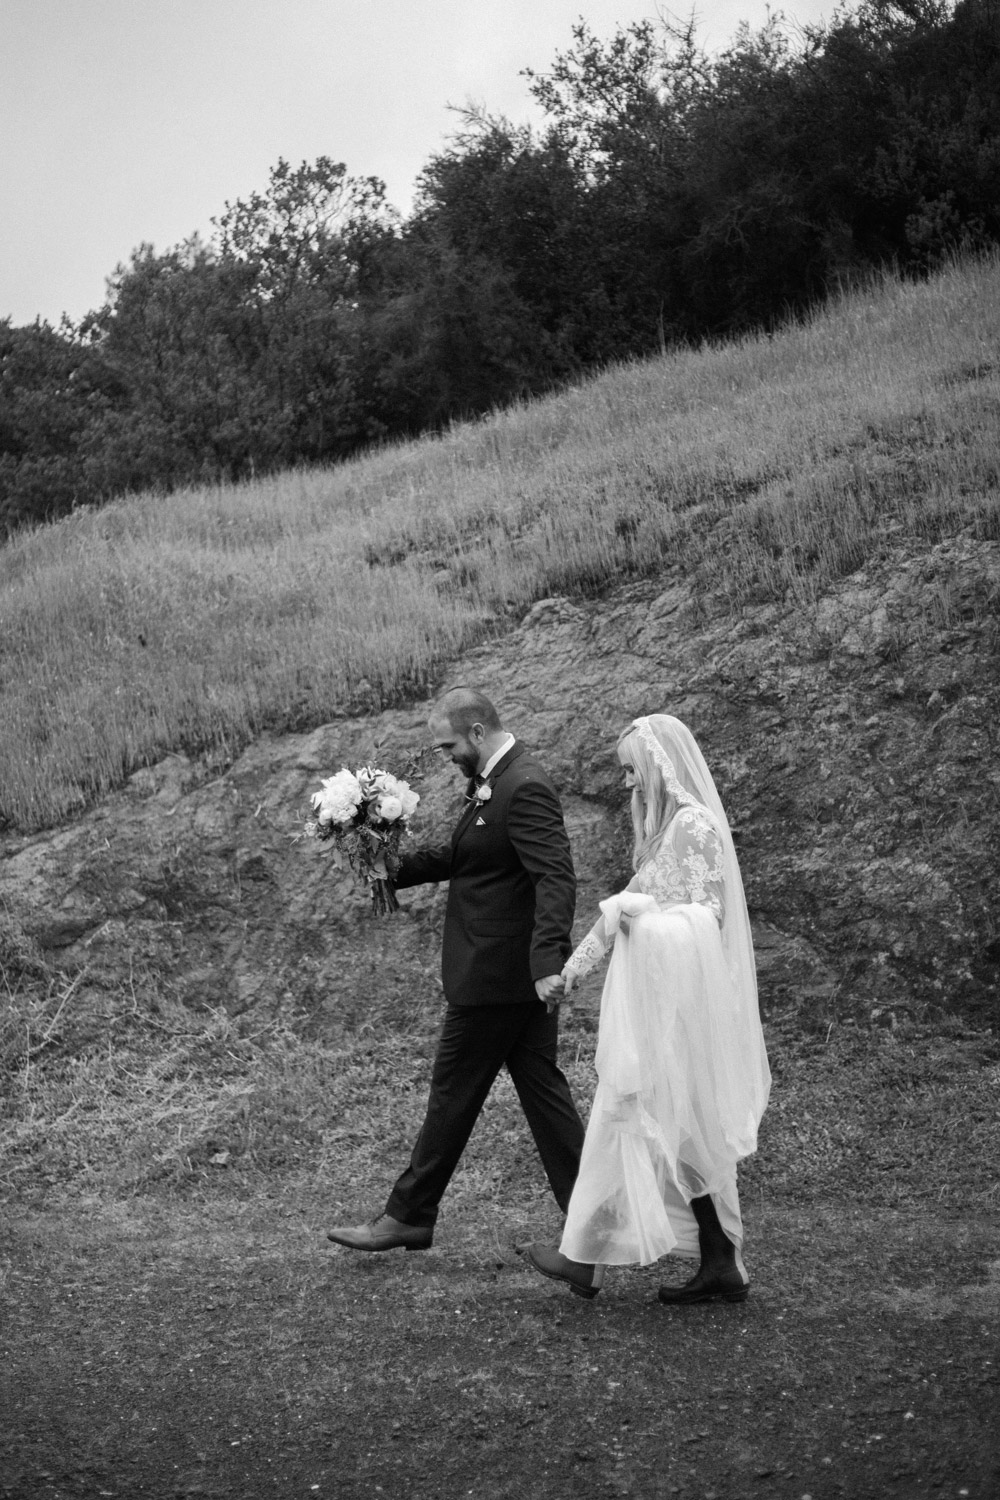 hans_fahden_wedding_38.jpg